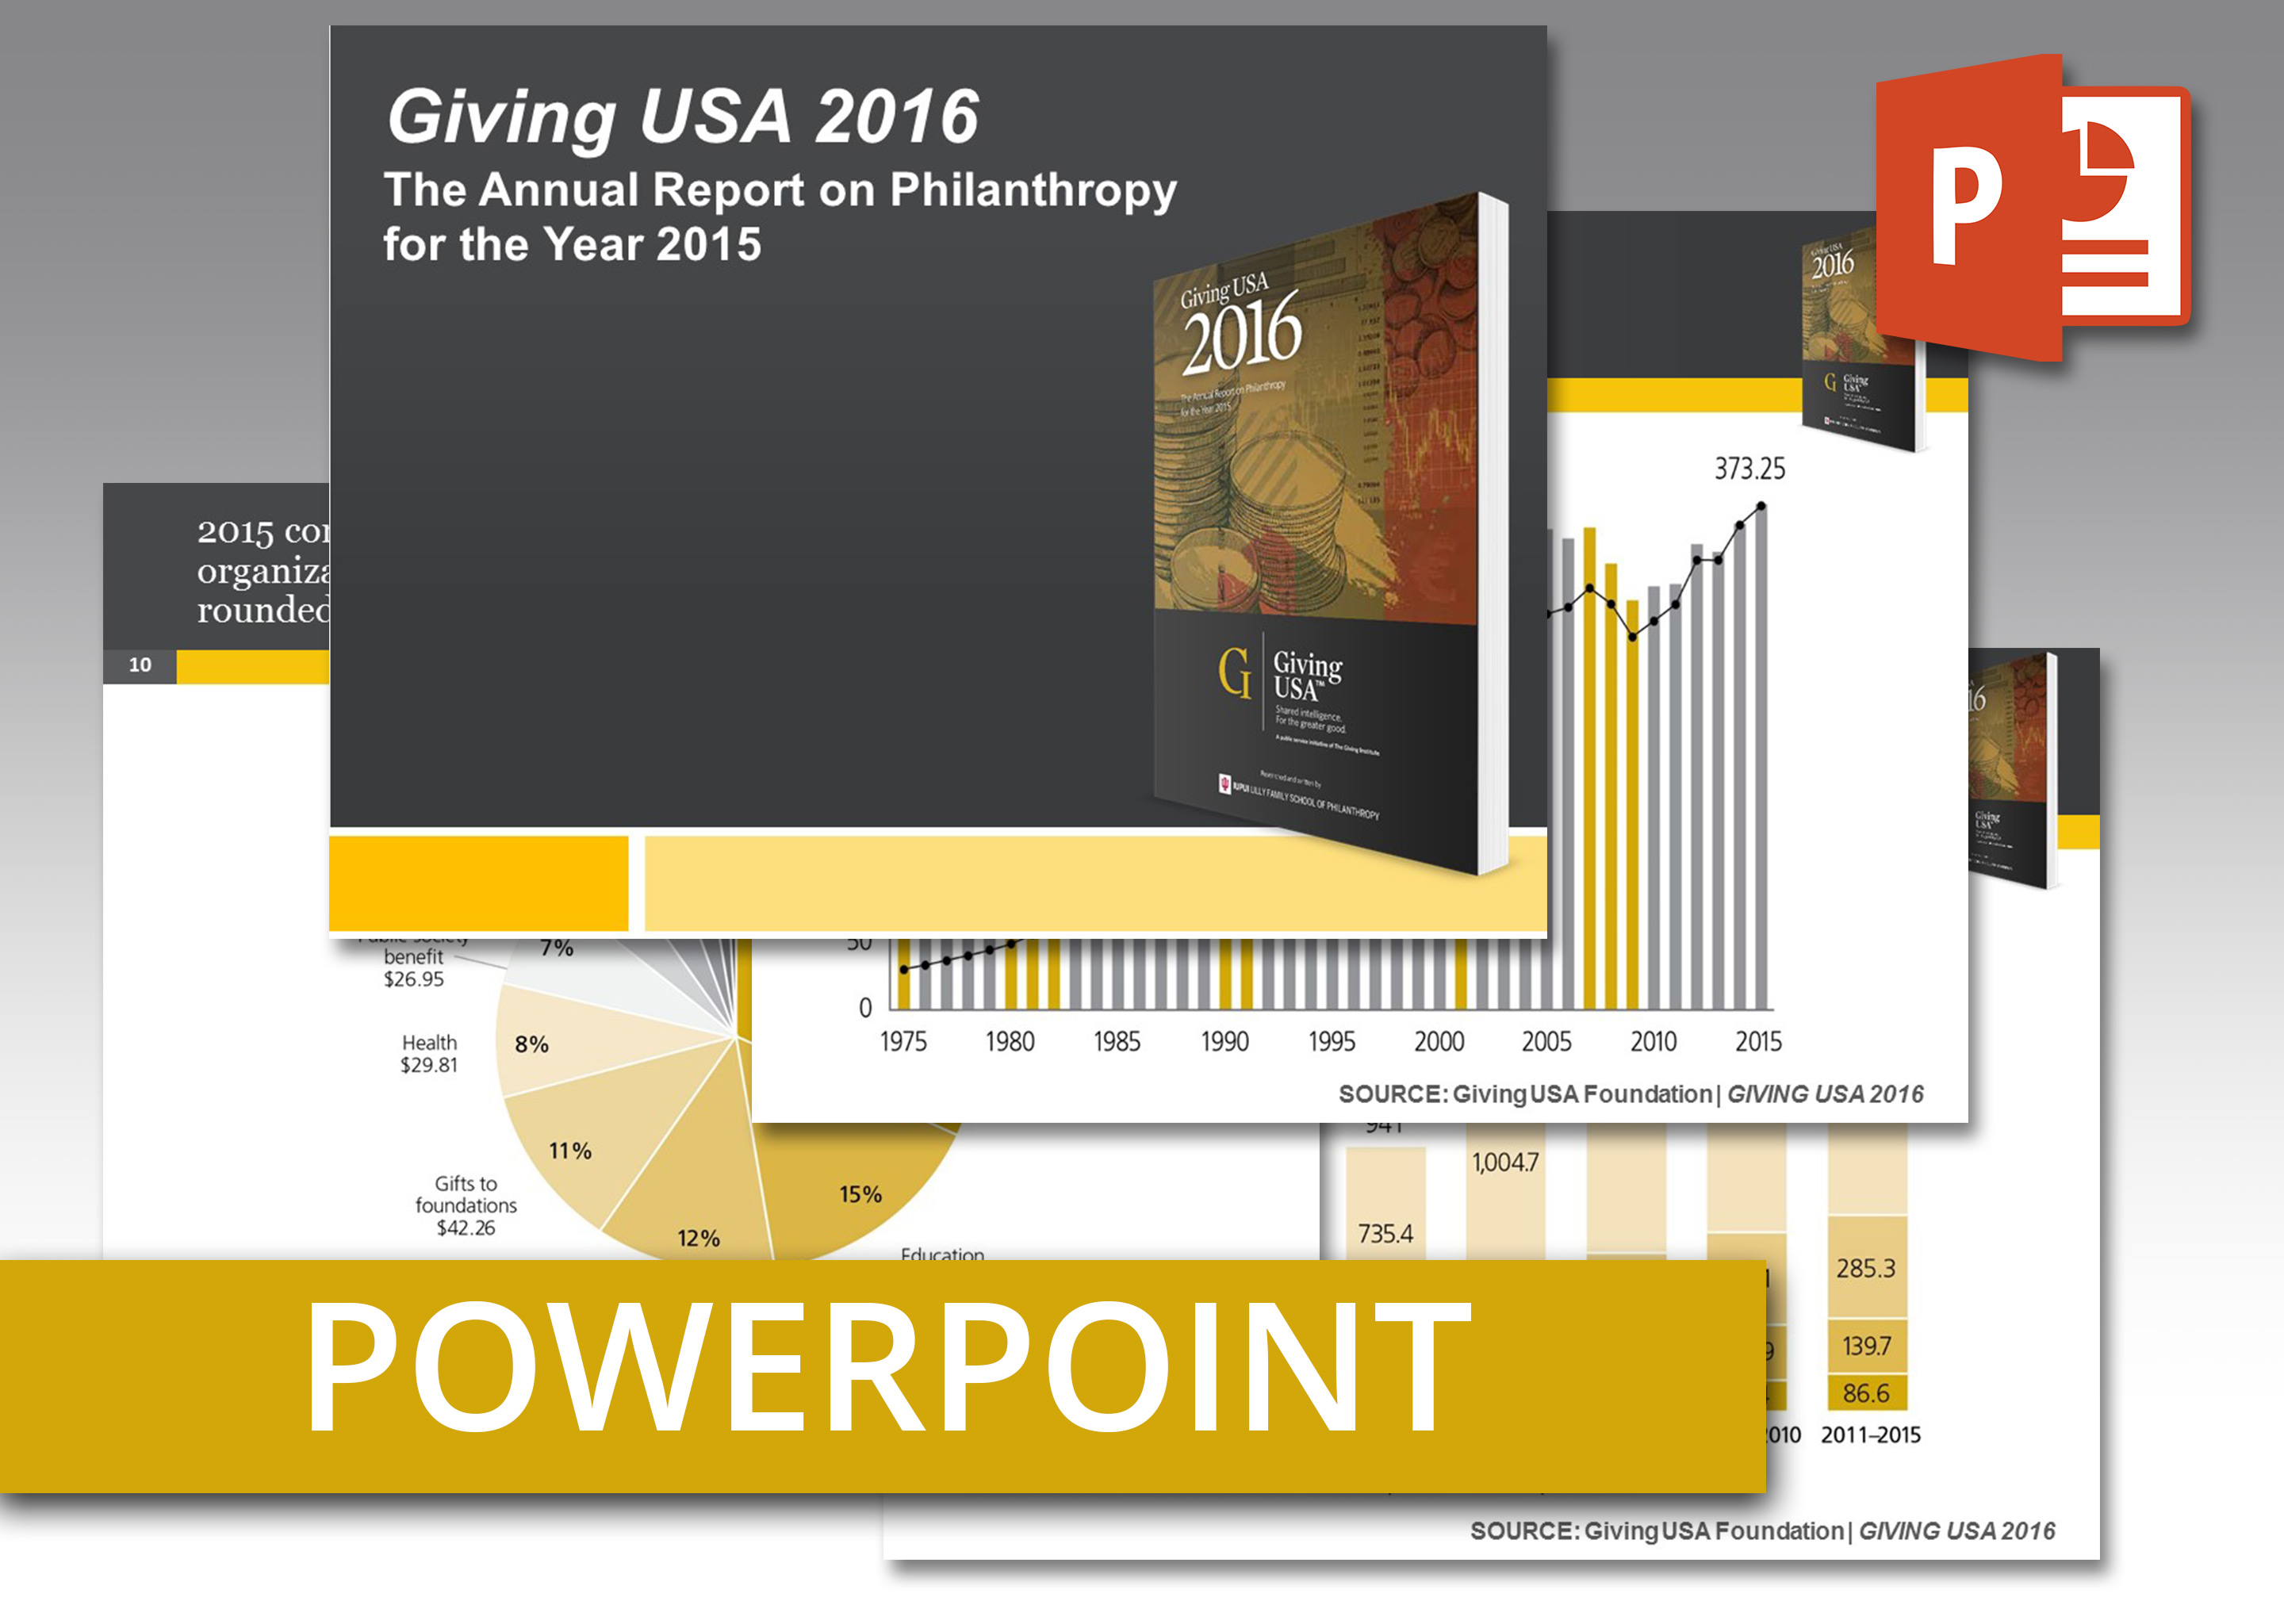 Coolmathgamesus  Inspiring Giving Usa  Powerpoint An Easytouse Presentation Of Report  With Fair Giving Usa  Powerpoint An Easytouse Presentation Of Report Findings Including Talking Points With Astonishing Microsoft Office Powerpoint Presentation  Free Download Also Free Online Powerpoint Presentations In Addition Download Powerpoint Slides Free And Microsoft Powerpoint Slide Themes As Well As Insert Excel To Powerpoint Additionally Geoffrey Chaucer Powerpoint From Givingusaorg With Coolmathgamesus  Fair Giving Usa  Powerpoint An Easytouse Presentation Of Report  With Astonishing Giving Usa  Powerpoint An Easytouse Presentation Of Report Findings Including Talking Points And Inspiring Microsoft Office Powerpoint Presentation  Free Download Also Free Online Powerpoint Presentations In Addition Download Powerpoint Slides Free From Givingusaorg